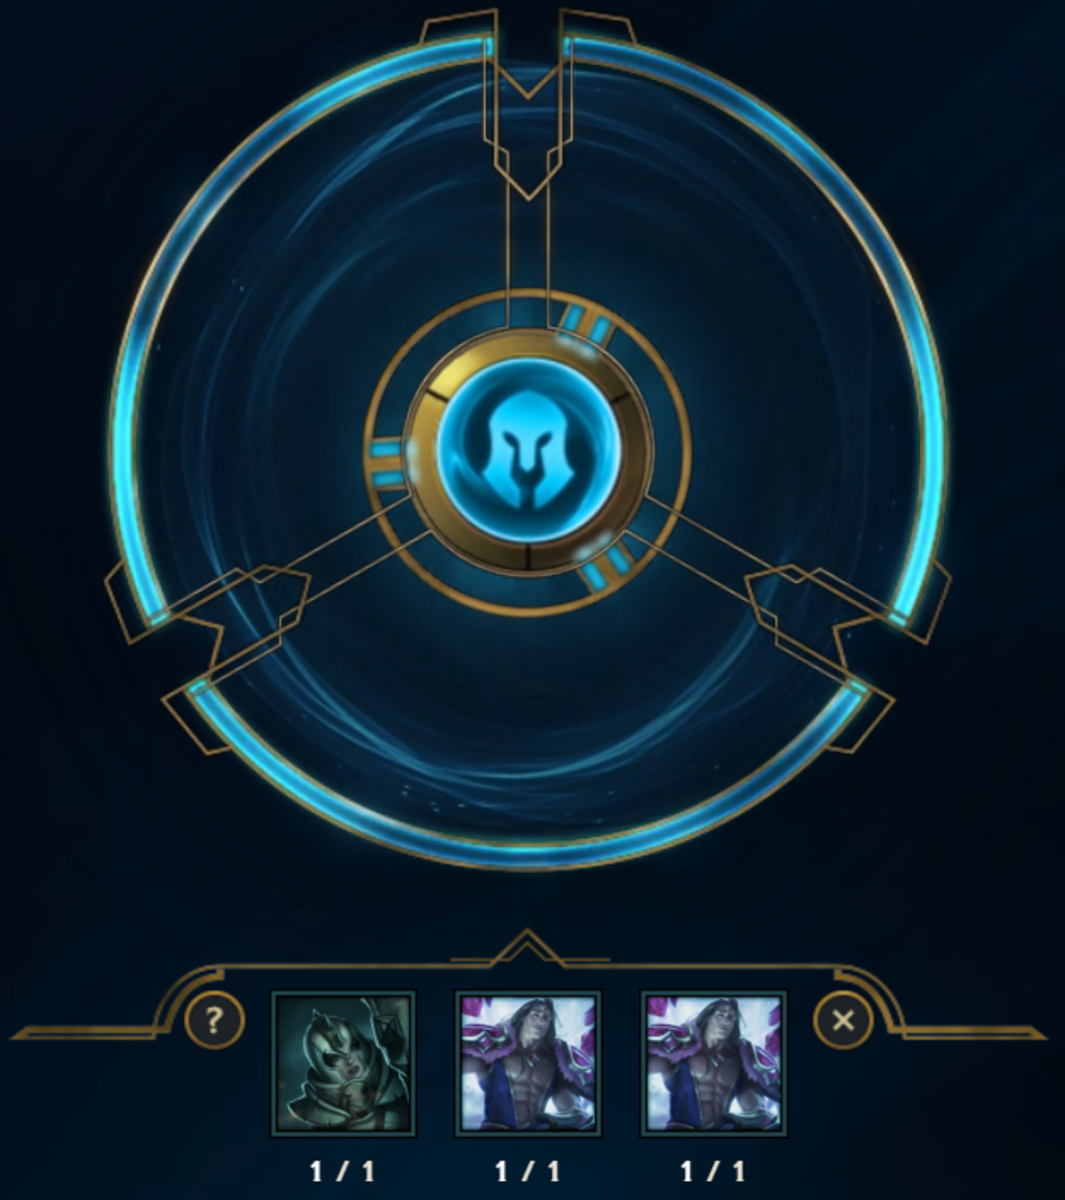 Re-Rolling 3 Skin Shards into a Permanent Skin: Don't worry, I only re-rolled the Taric shards because I own that fabulous skin.